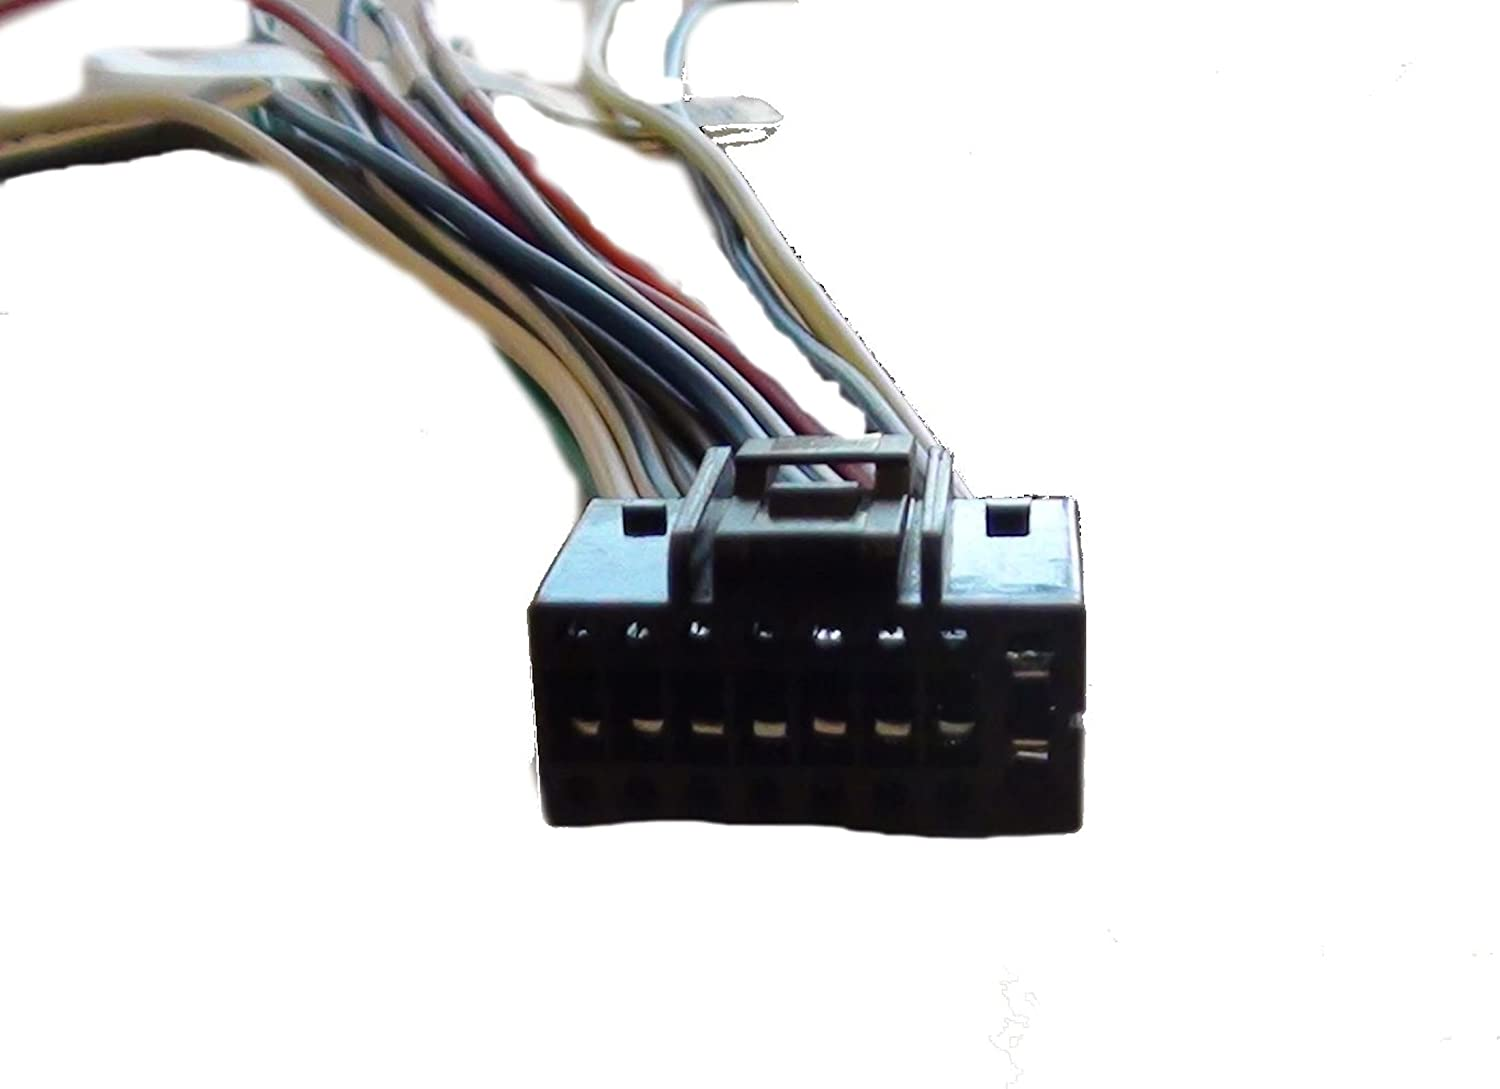 71a21bh60FL._SL1500_ amazon com kenwood wire harness kdcx996 kdcx997 kiv700 kiv701 kenwood kiv-bt900 wiring diagram at panicattacktreatment.co